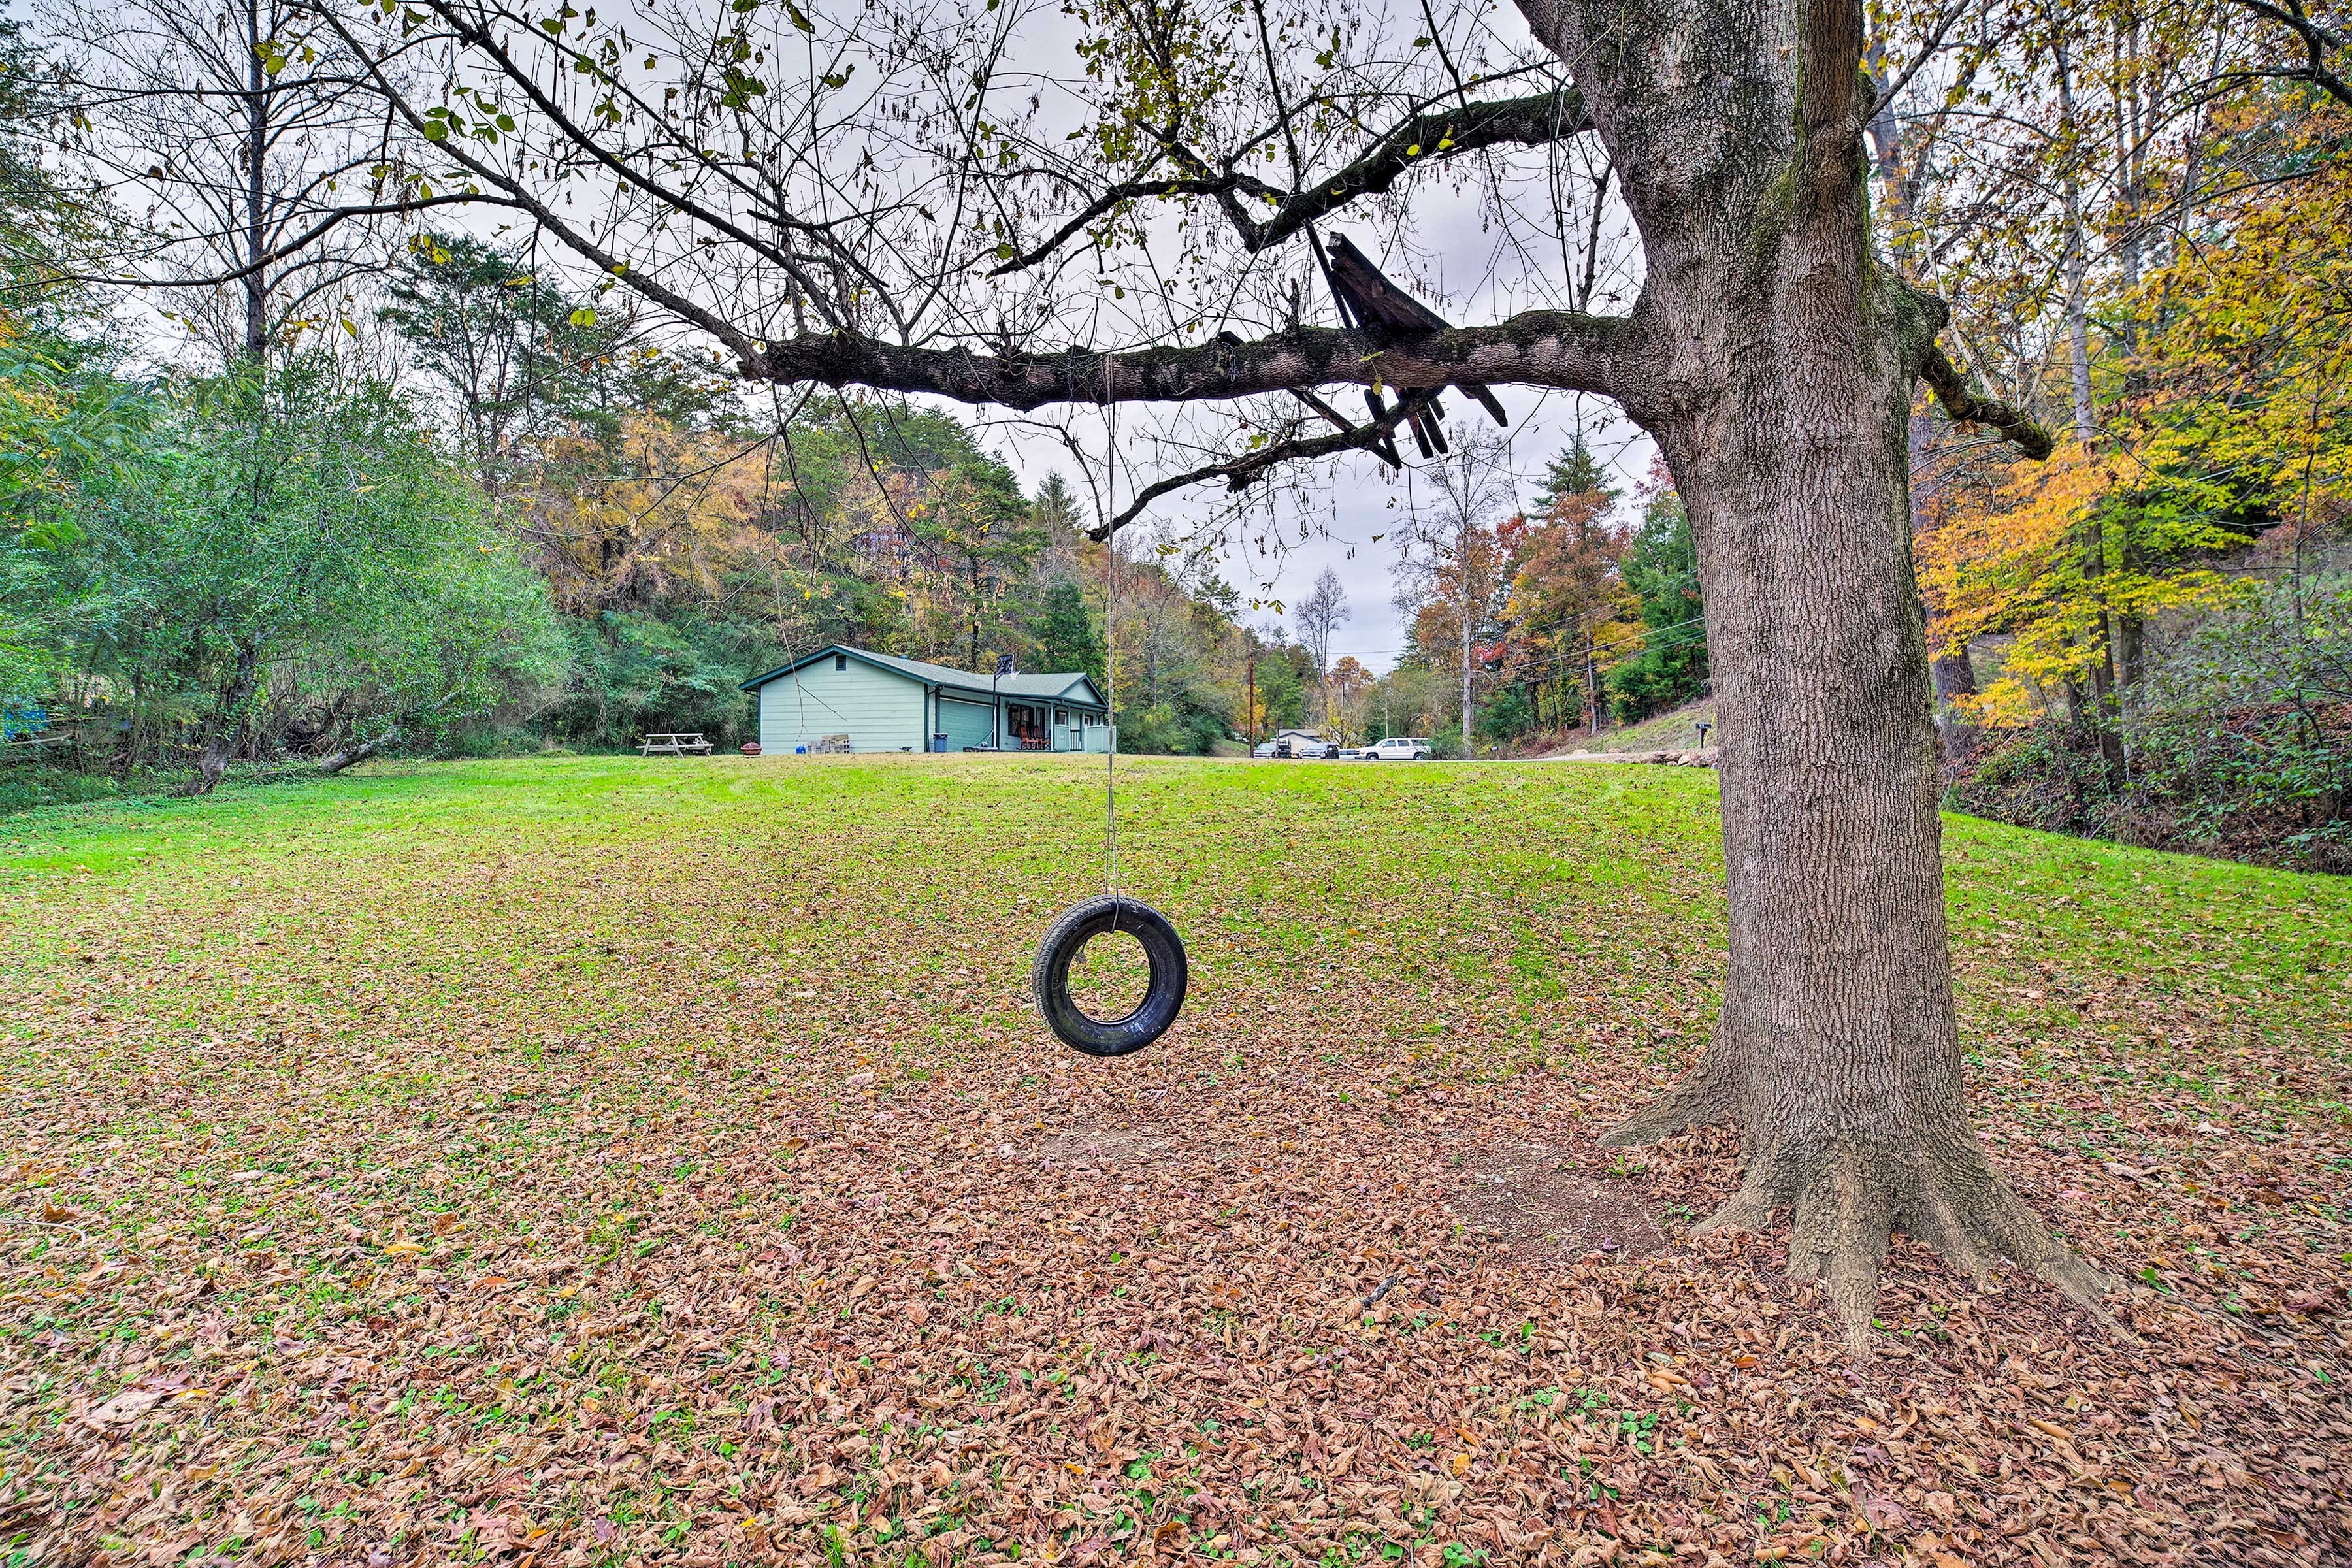 The kids will love the tire swing.